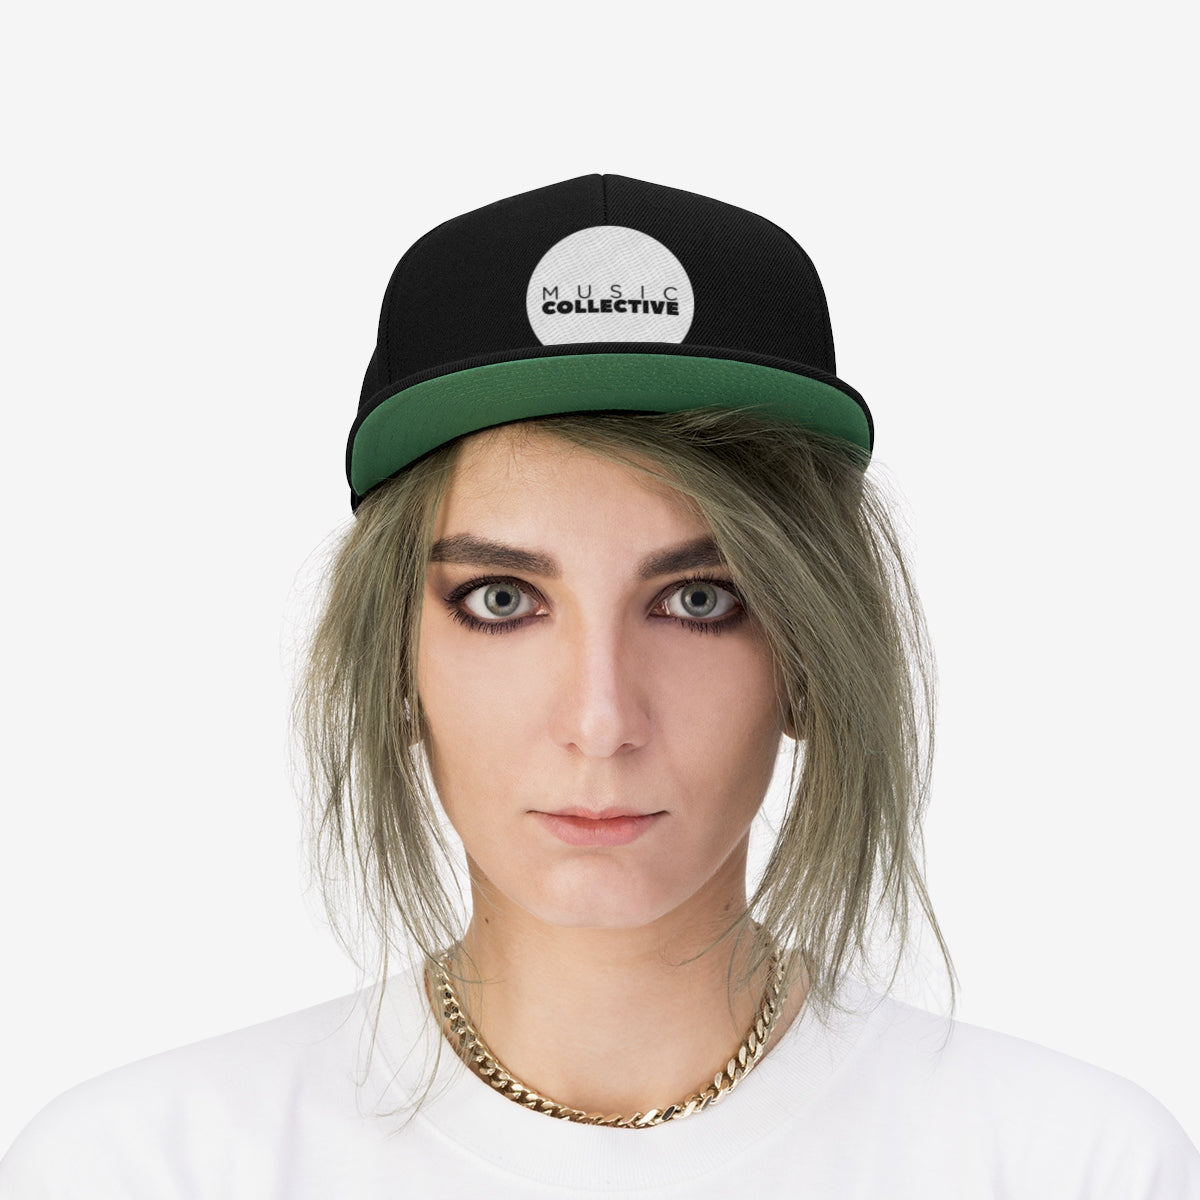 Music Collective Unisex Flat Bill Hat